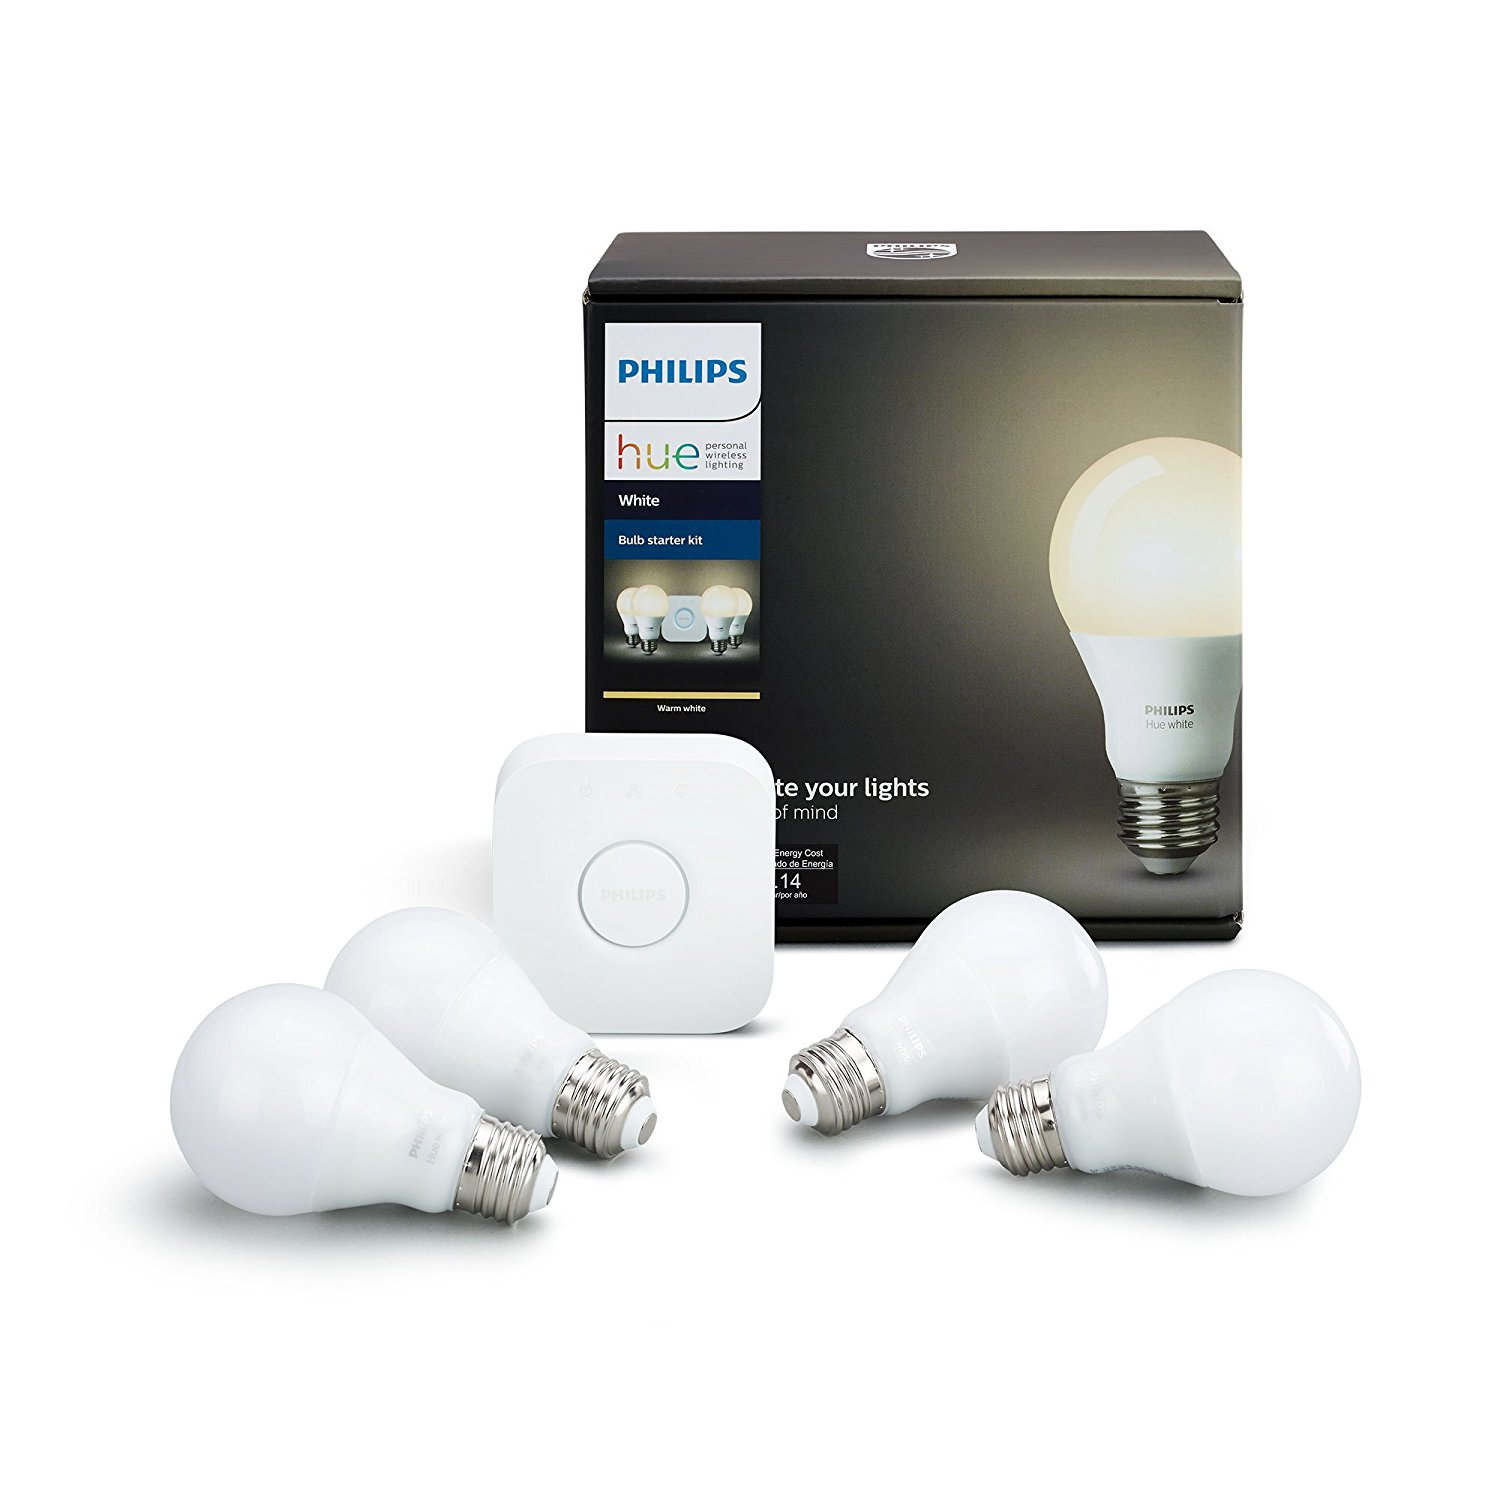 Philips Hue Examples Philips Hue White Smart Bulb Starter Kit 4 A19 Bulbs And